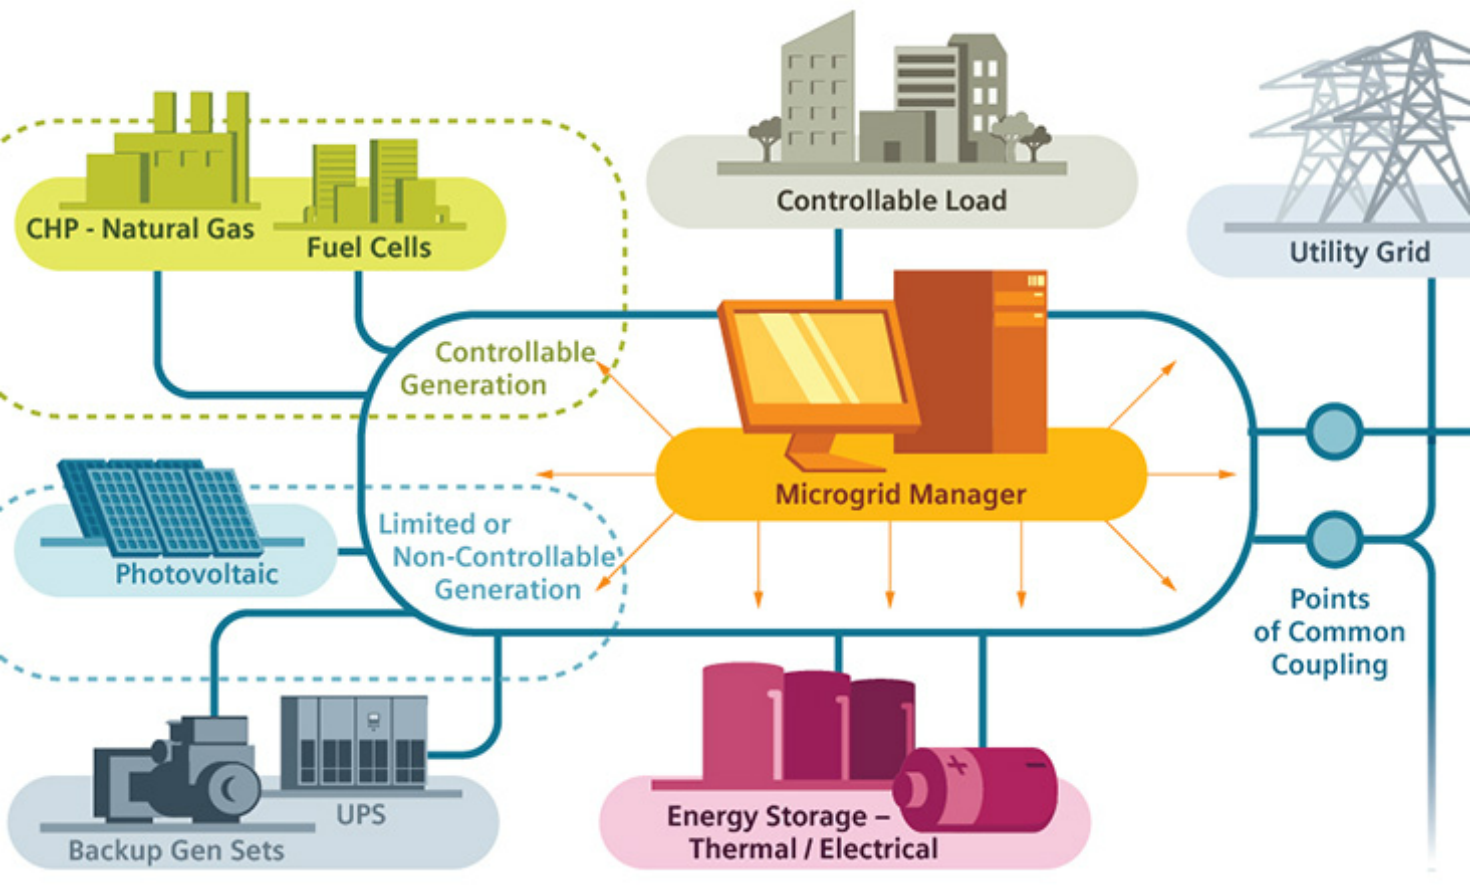 Siemens Microgrid Diagram Png 1470 894 Renewable Energy News Energy Energy Storage